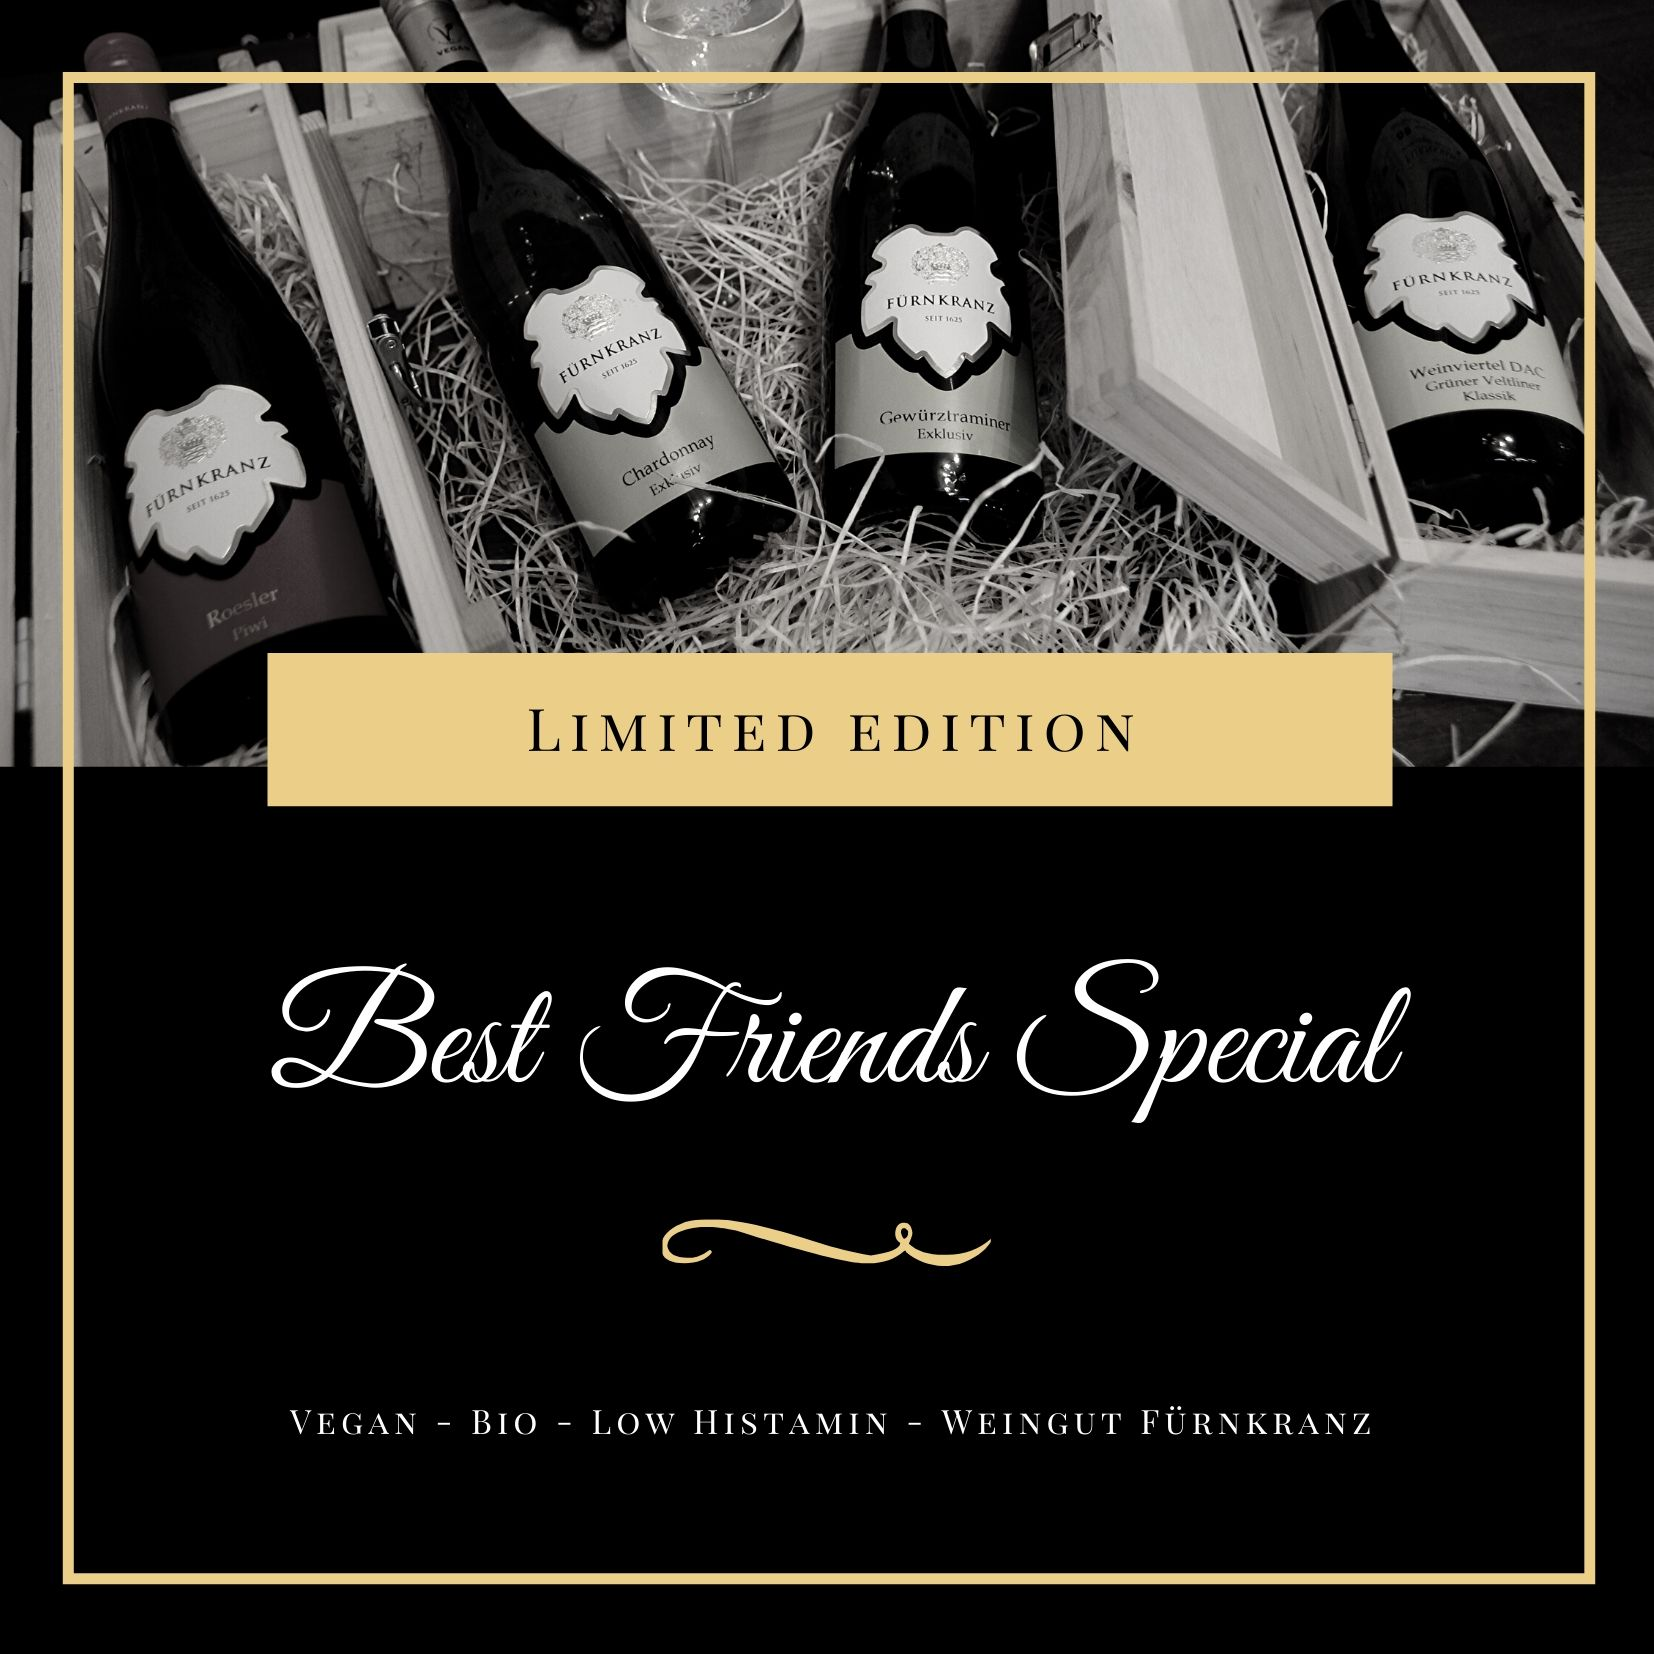 Best Friends Special